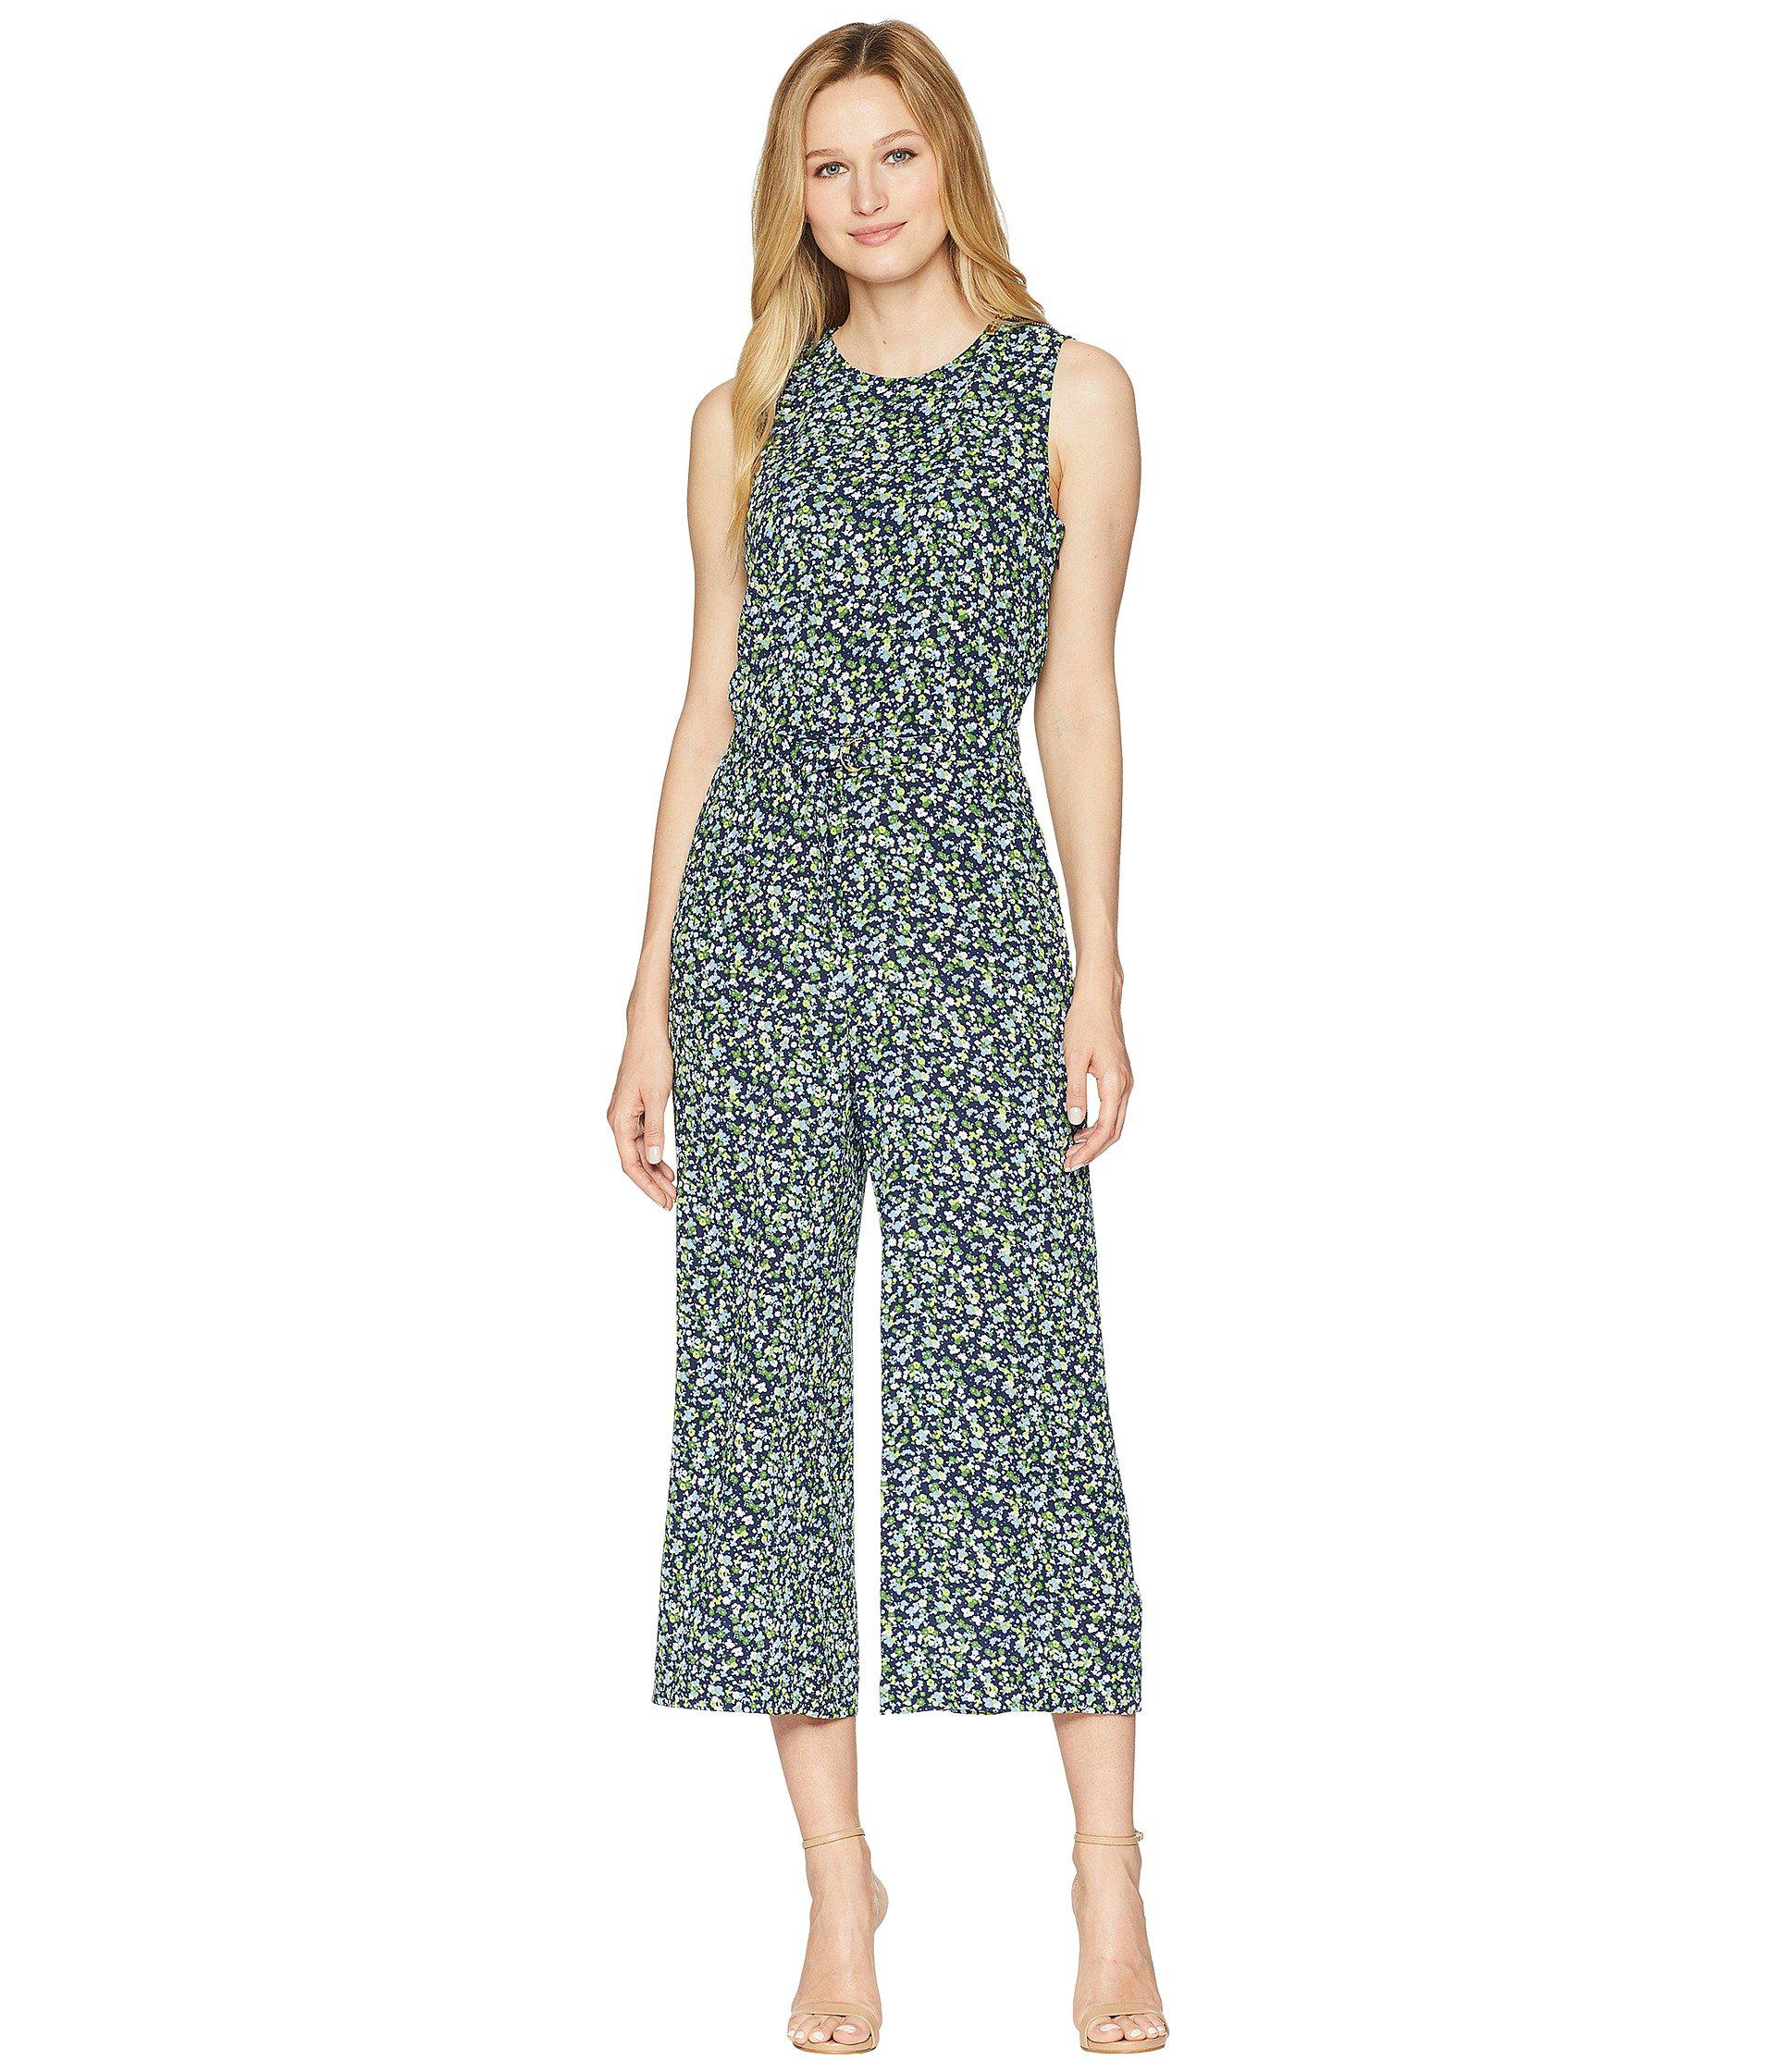 2982d3d7ff2c Lyst - MICHAEL Michael Kors Tiny Wildflower Jumpsuit in Green - Save 26%